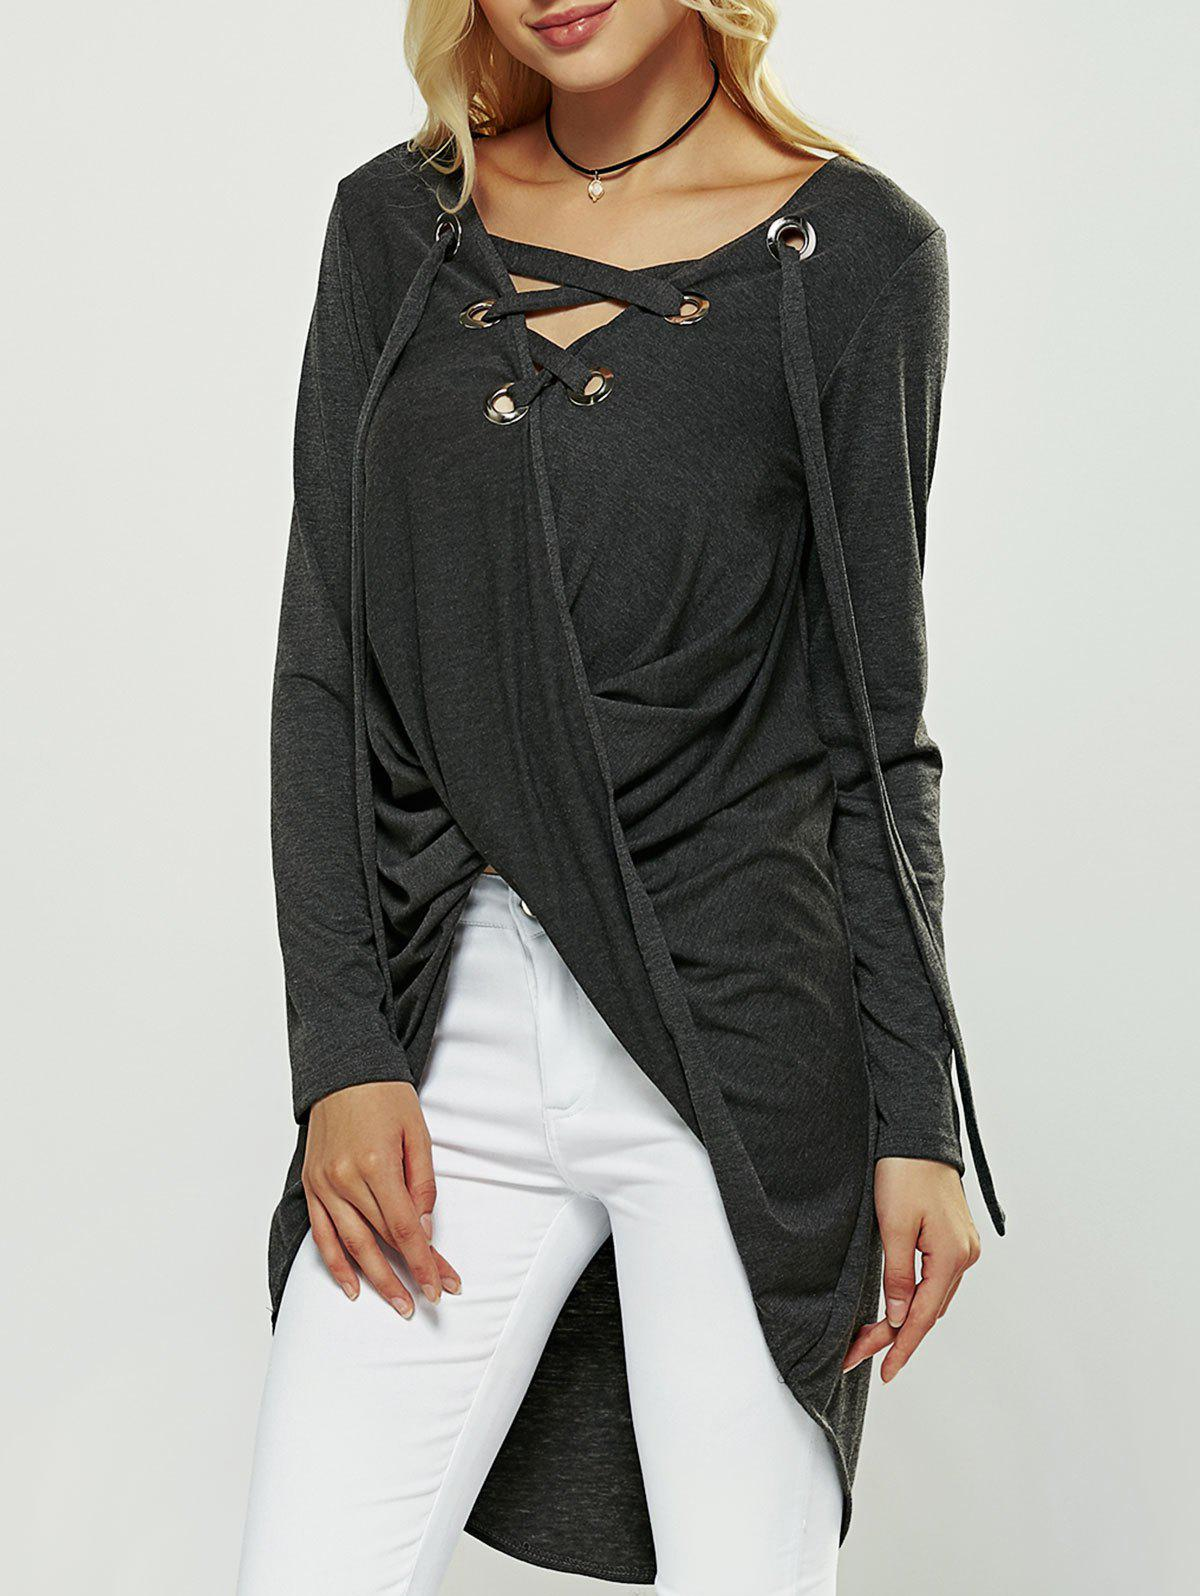 Cut Out Long Sleeve High Low Blouse - GRAY ONE SIZE